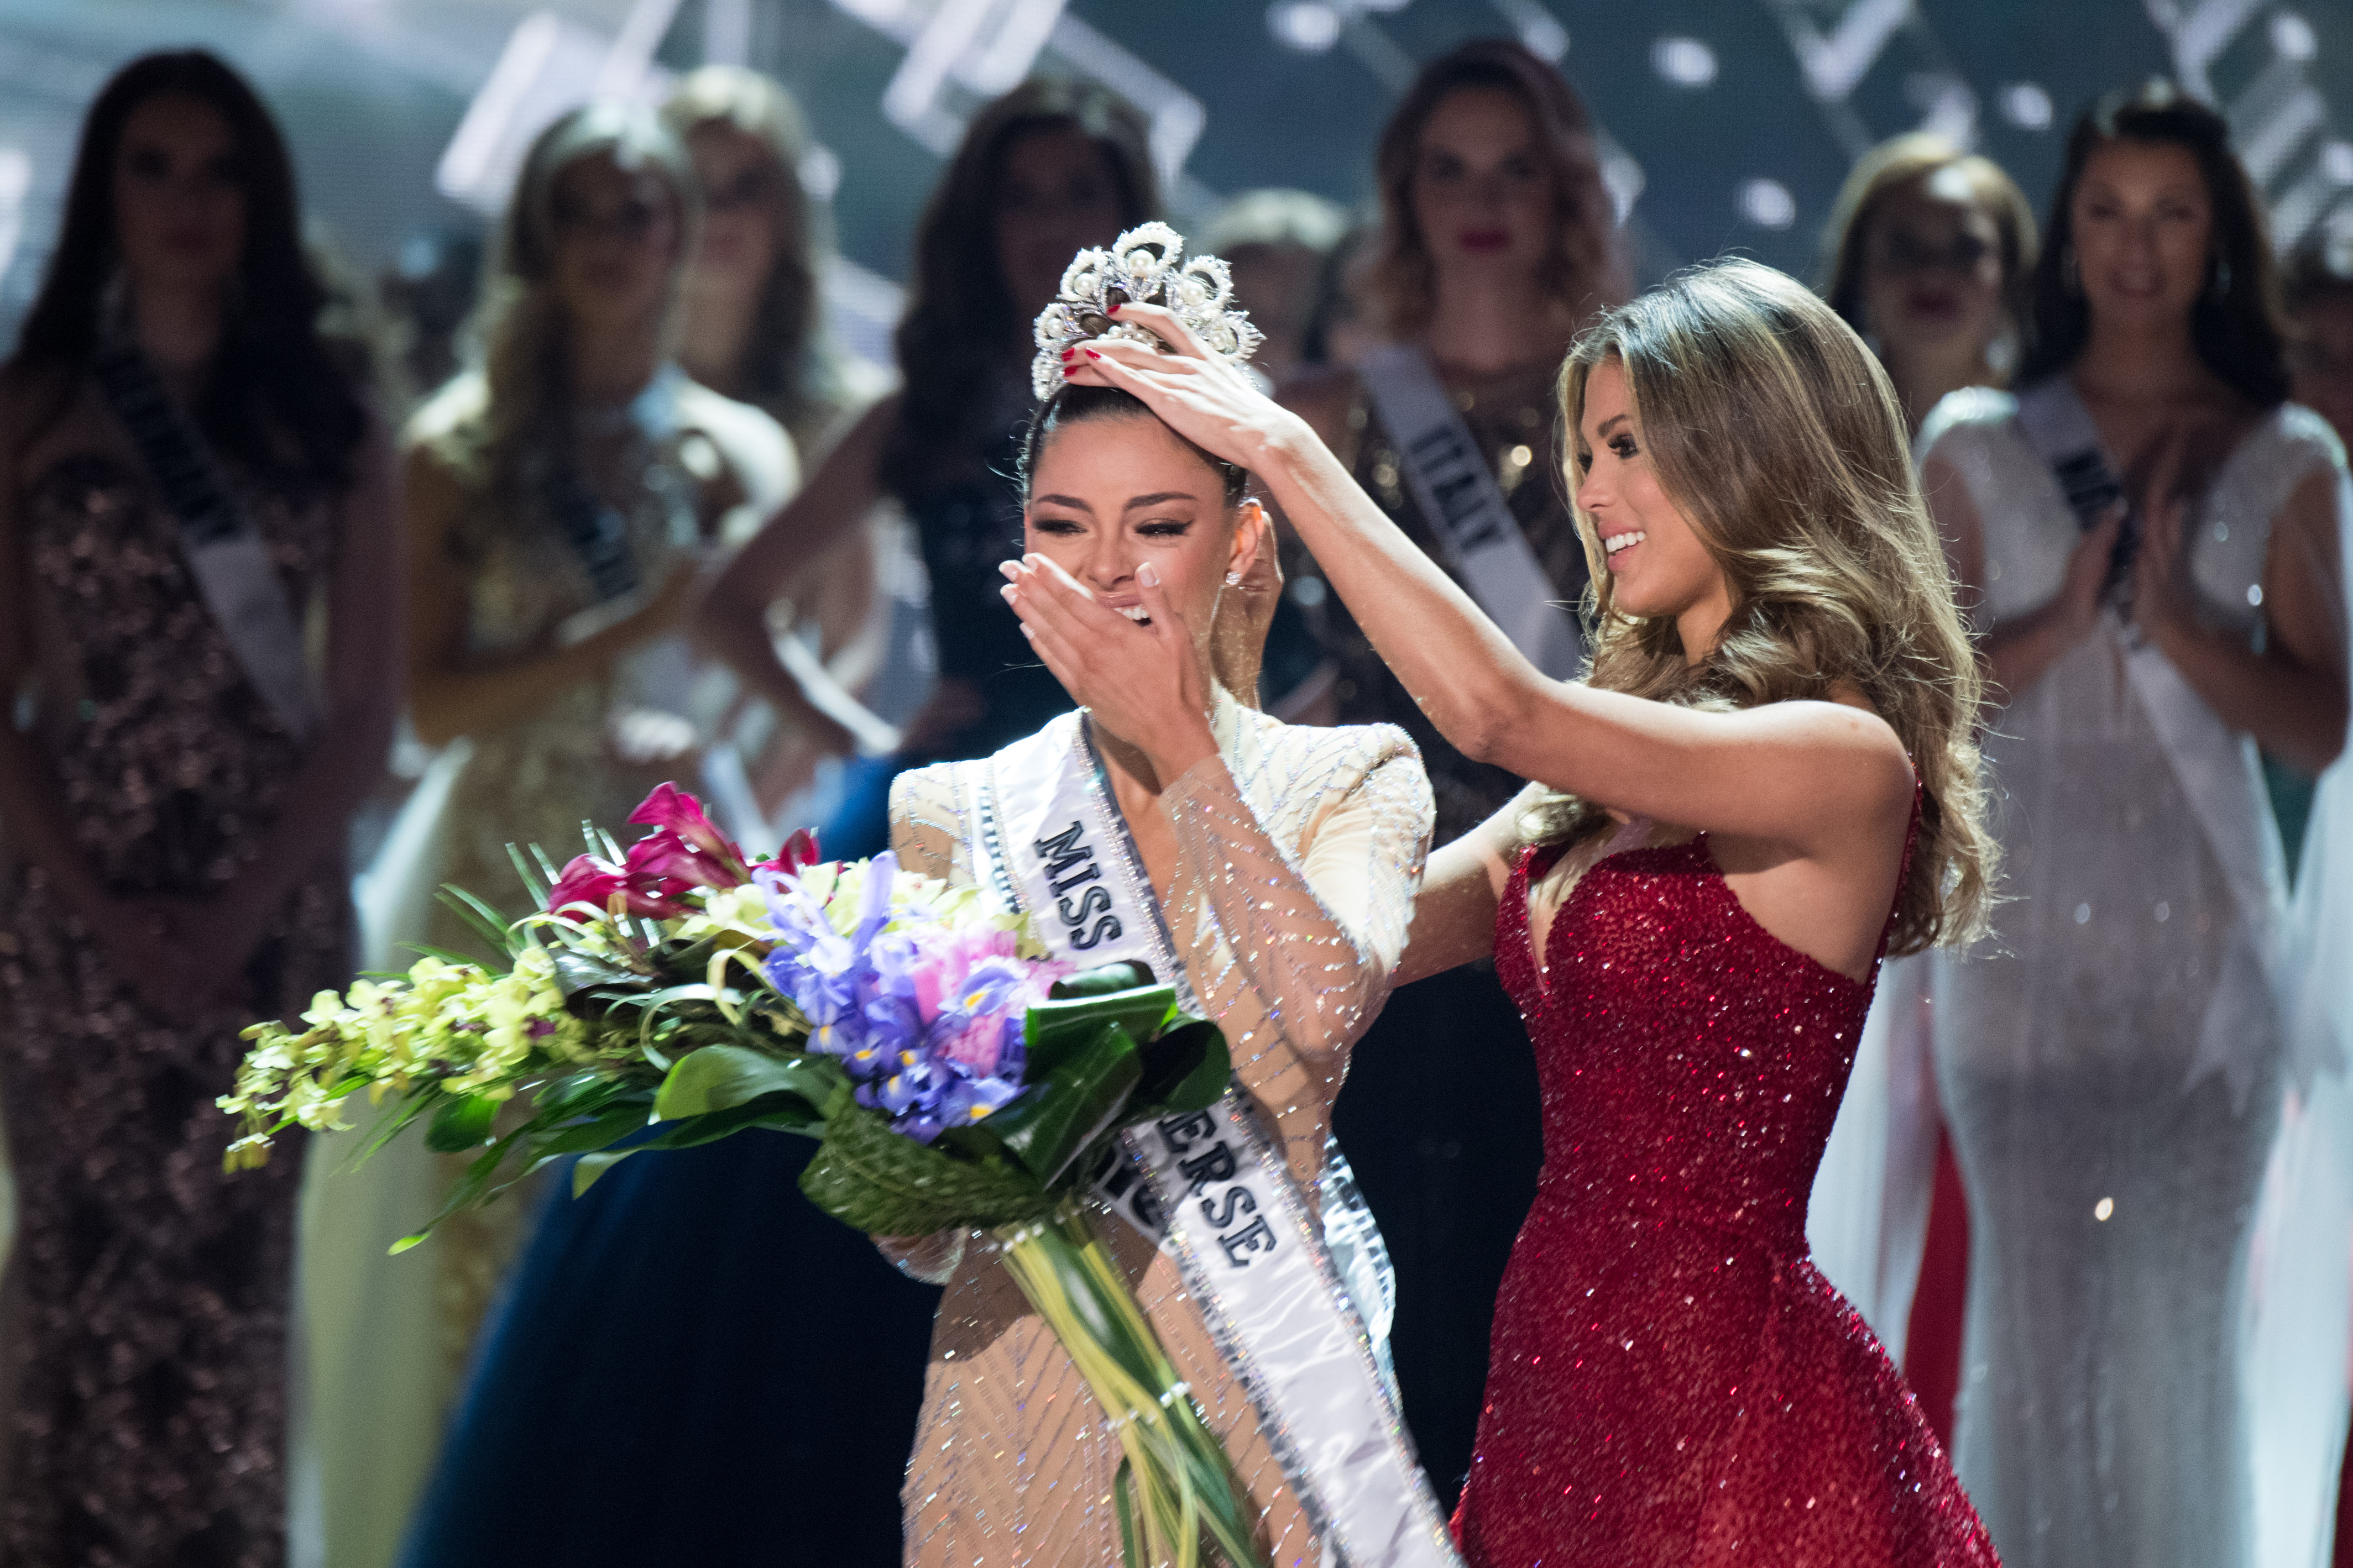 Iris crowns Demi-Leigh Nel-Peters, Miss South Africa 2017 as the new Miss Universe. Photo from Miss Universe Organization